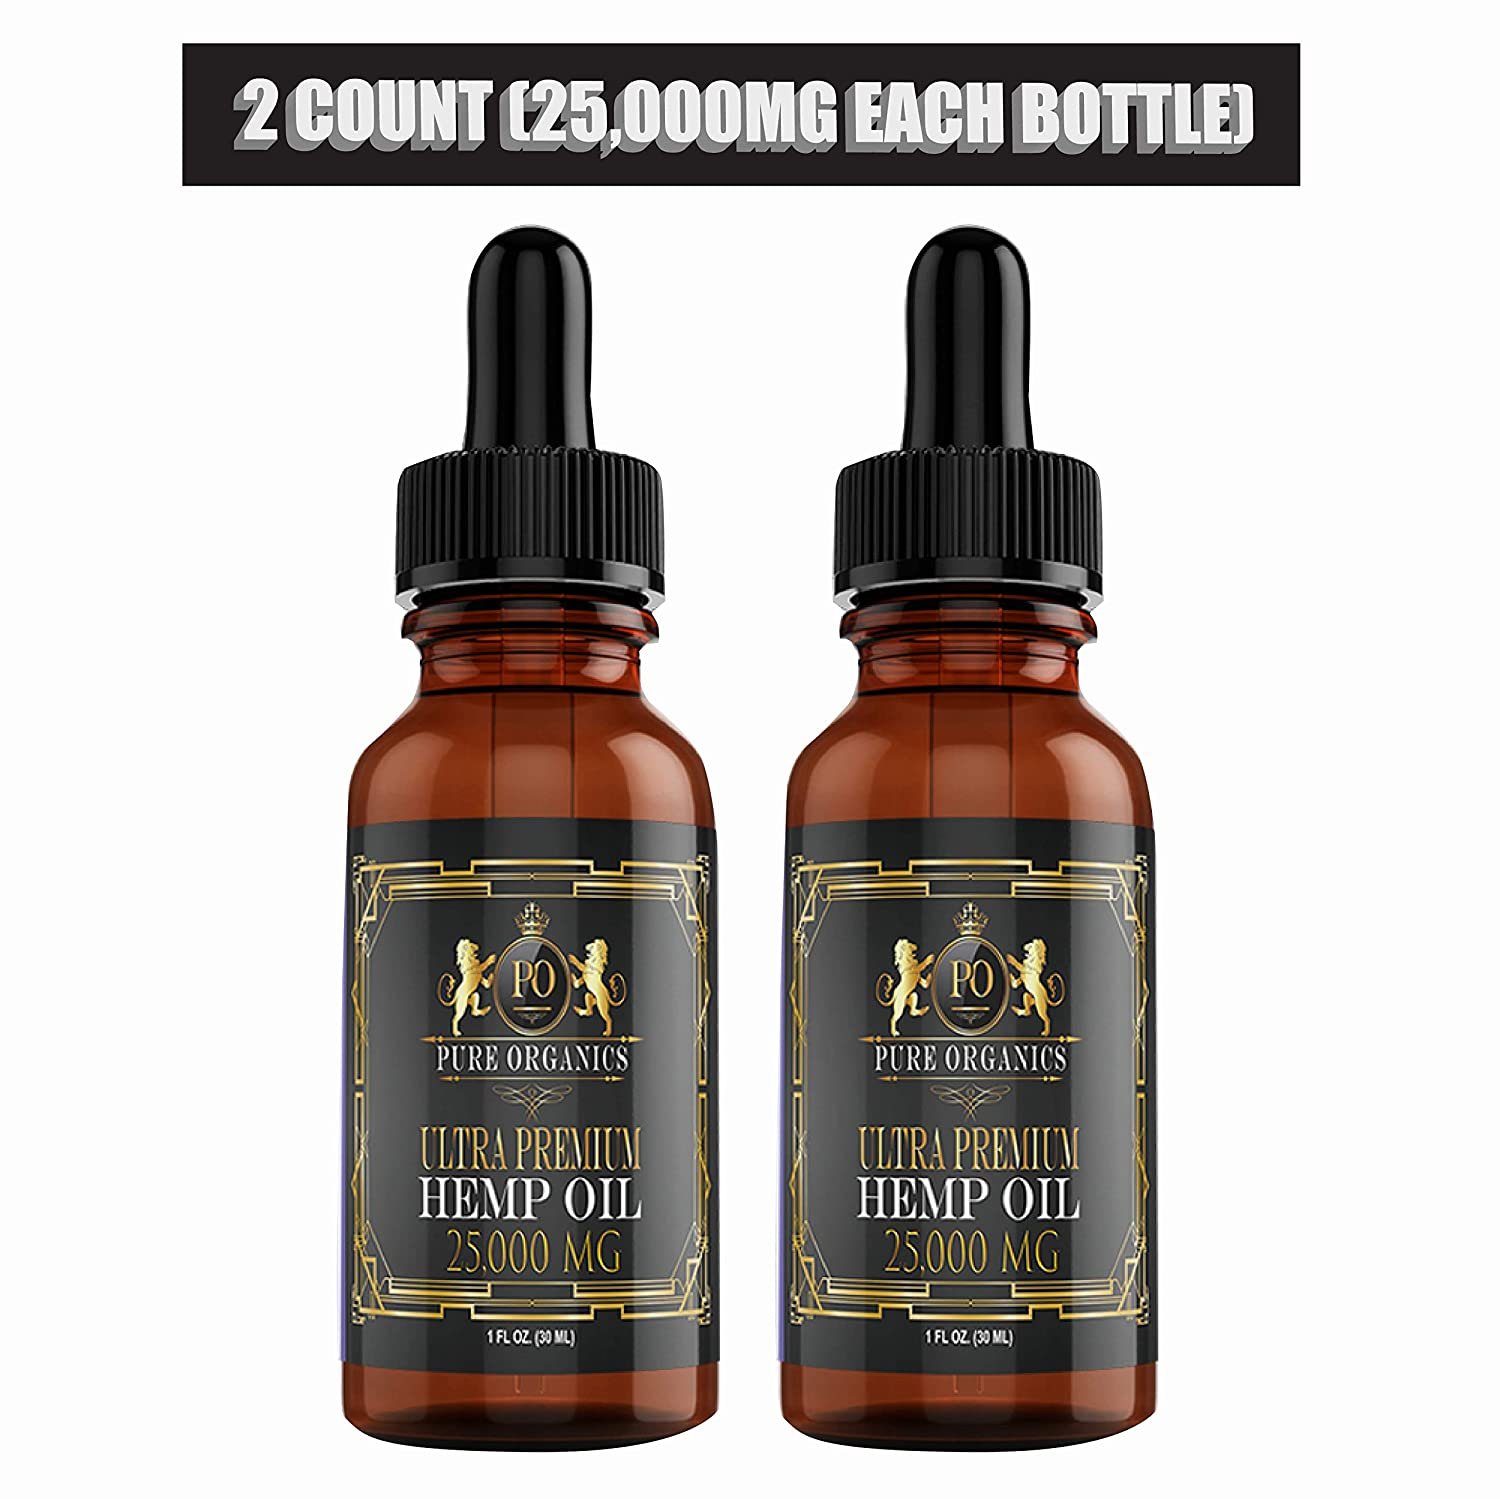 (2 Pack :: 25,000mg Each) Hemp Oil for Pain Relief Anxiety Relief Sleep Support :: Organic - Hemp Extract Supplement